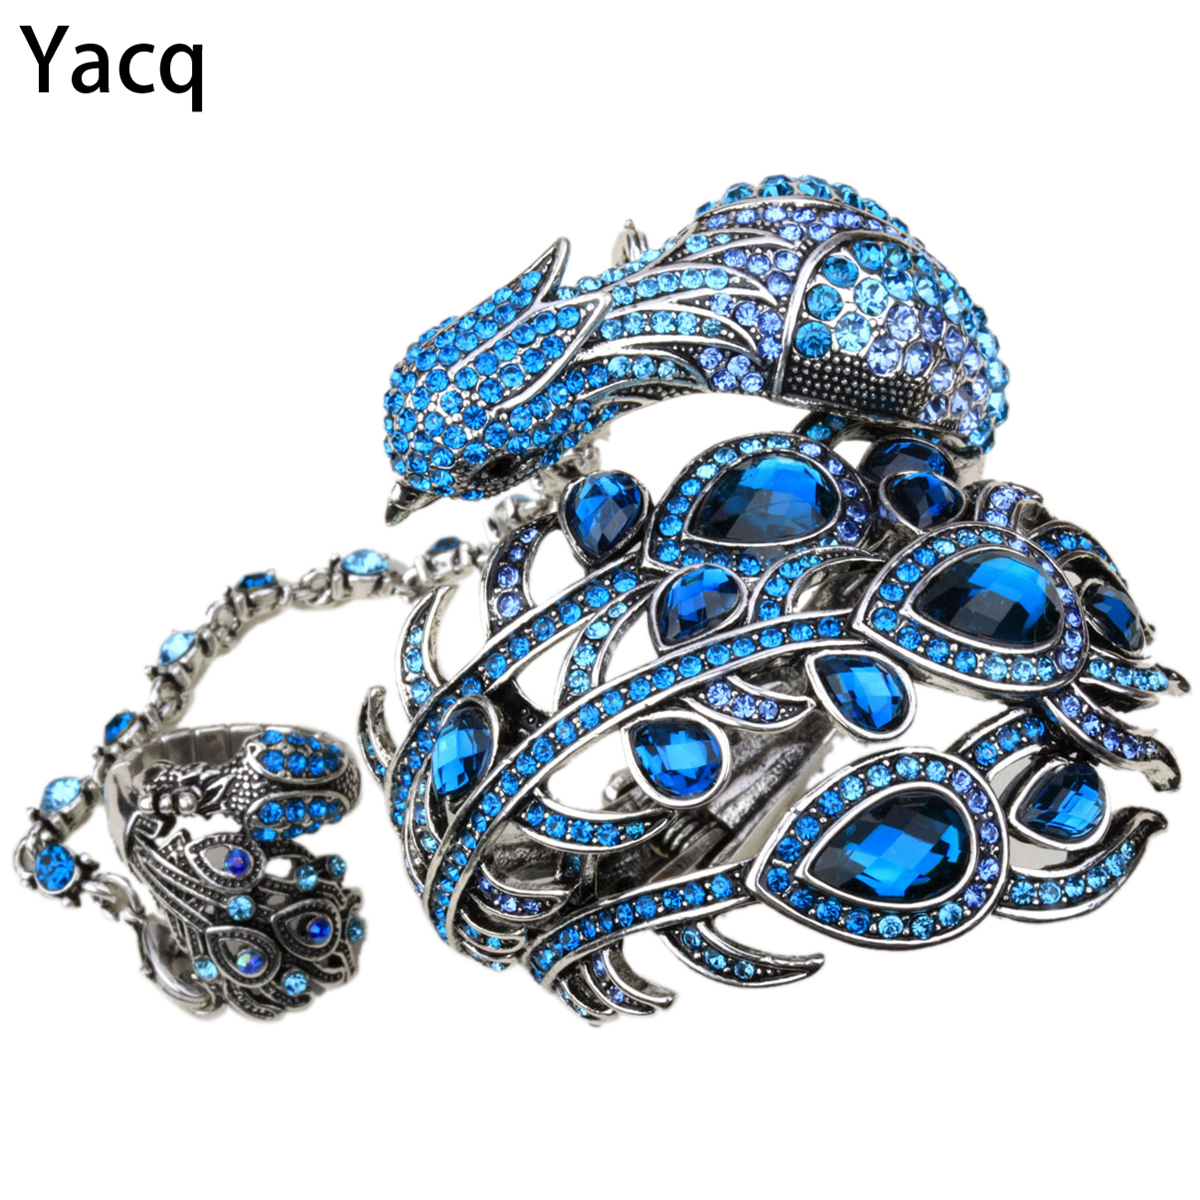 YACQ Peacock Bangle Bracelet Slave Hand Chain Attached Ring Sets Women Jewelry Gifts A23 Silver Gold Color Dropshipping